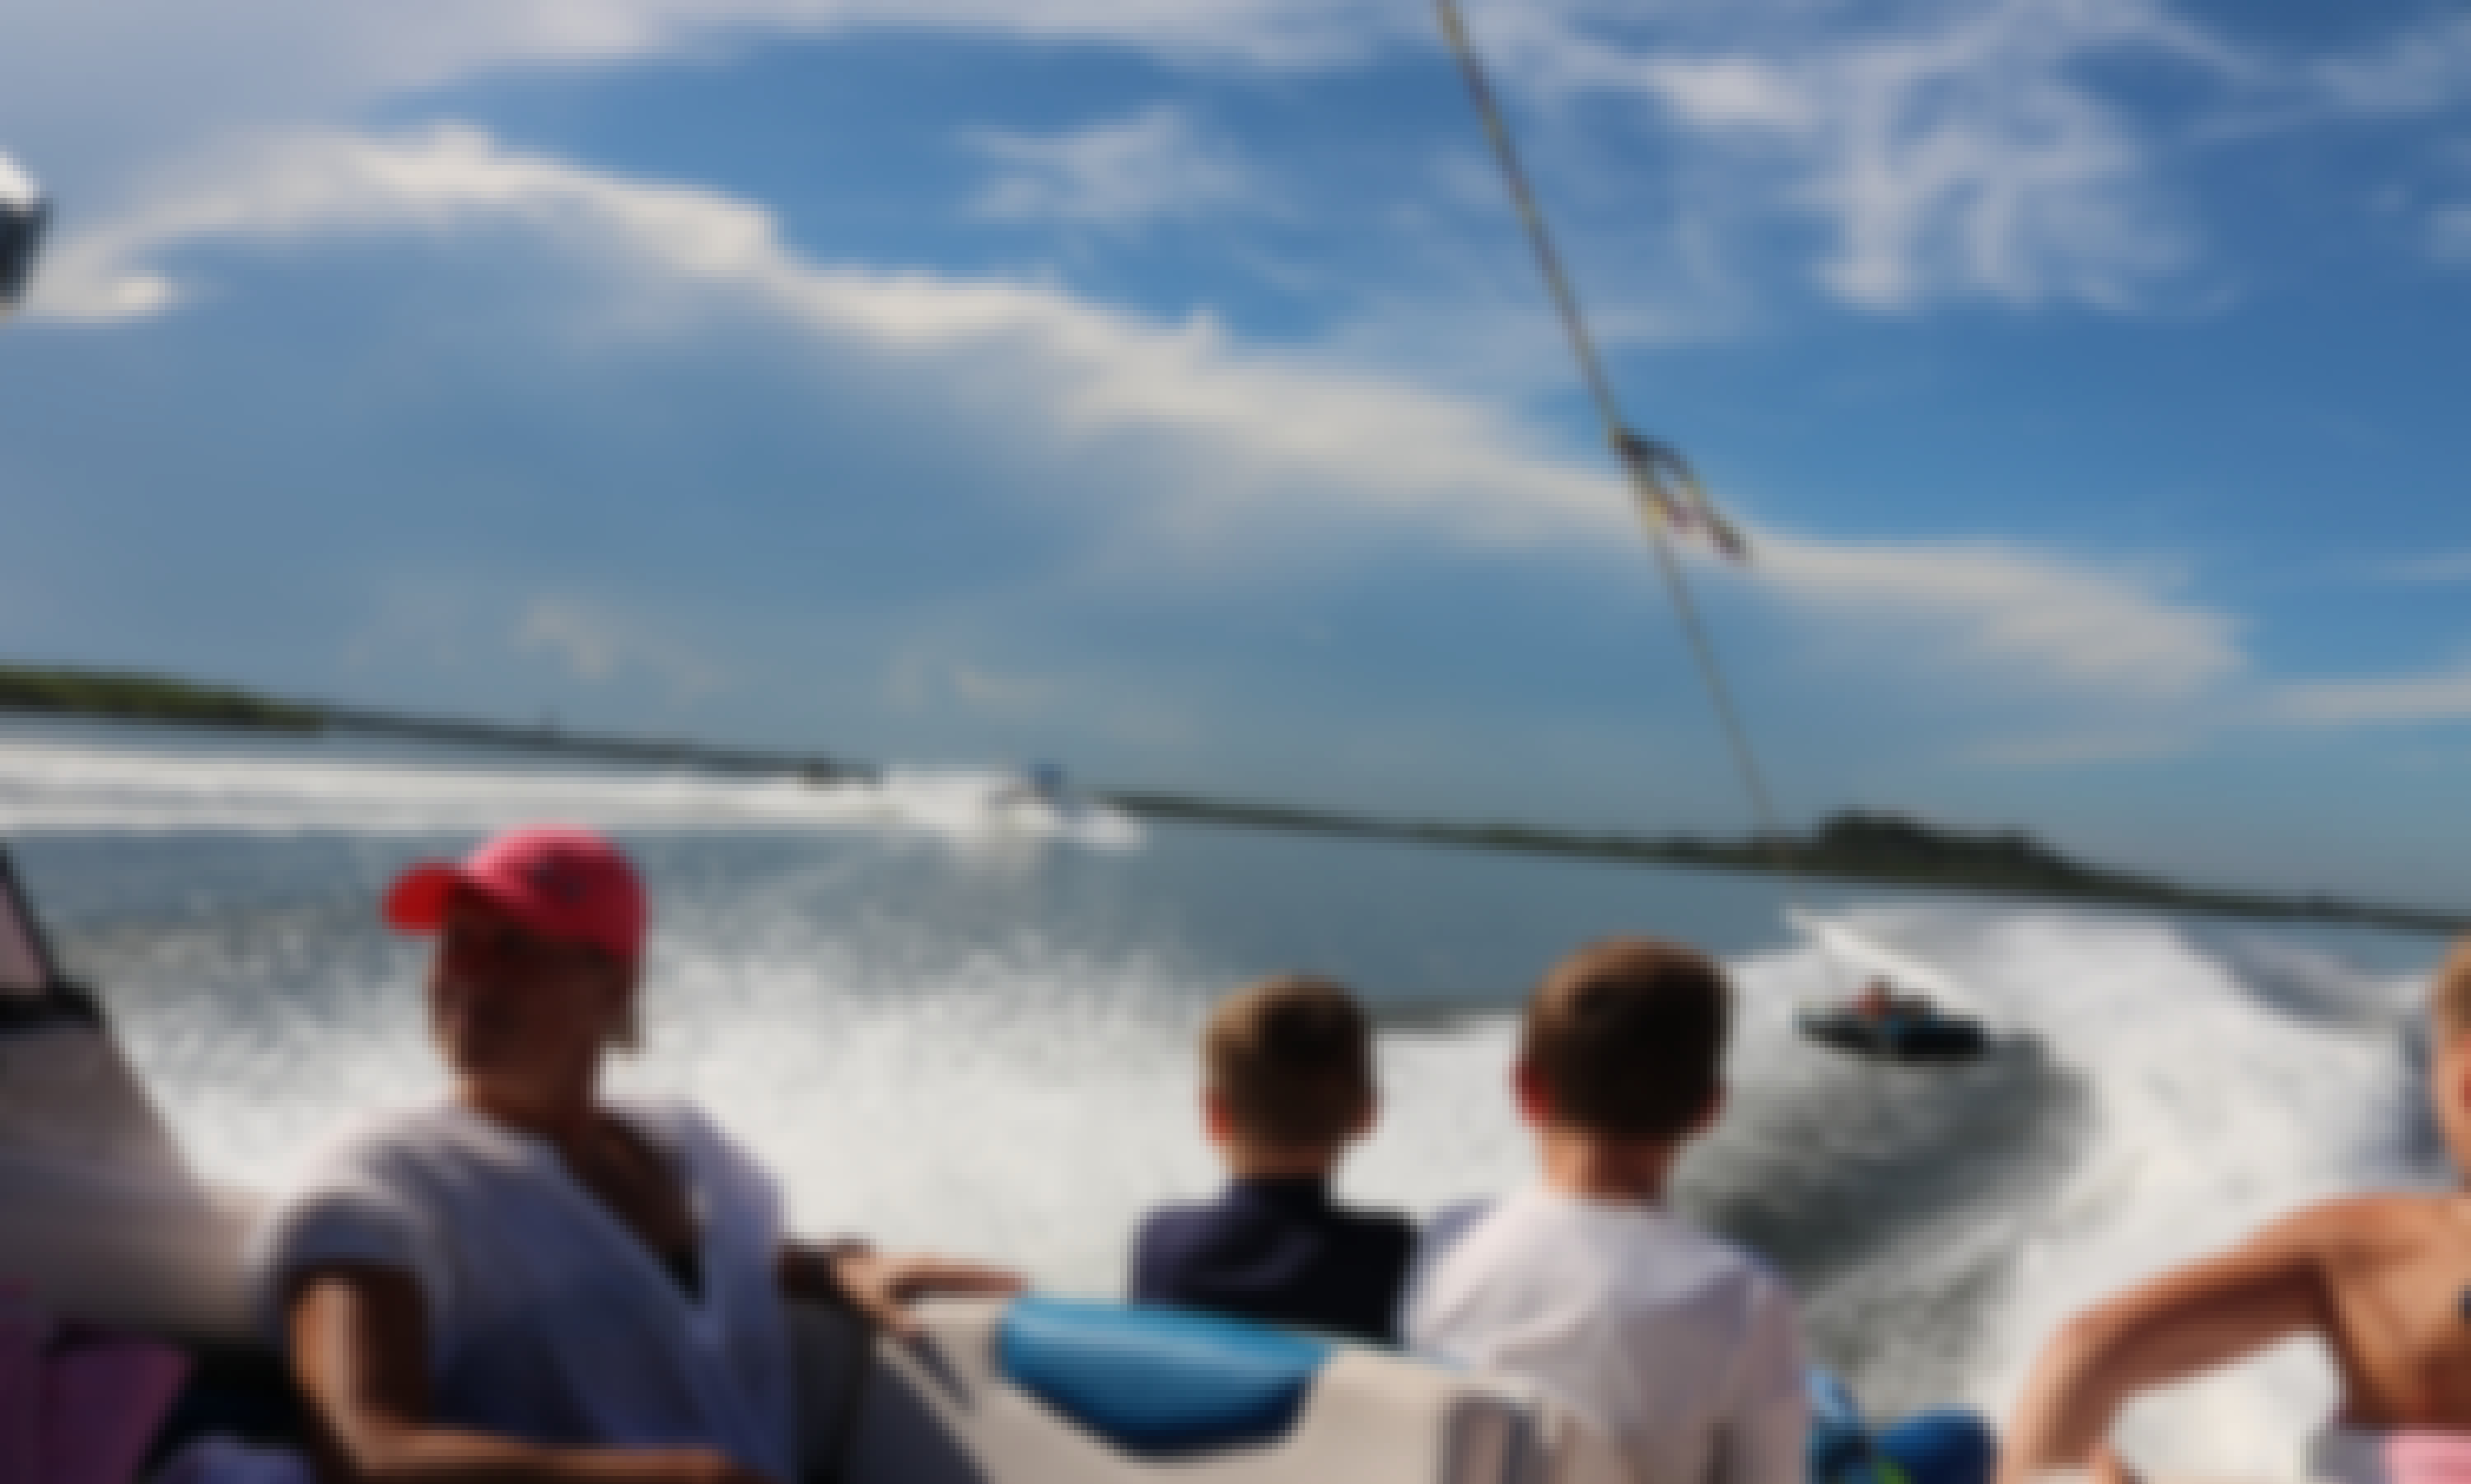 Reserve this 24' Chaparral Vortex Jet Boat with 4 Stroke 204 Hp Engine in Daytona Beach, Florida ( Captain Included)